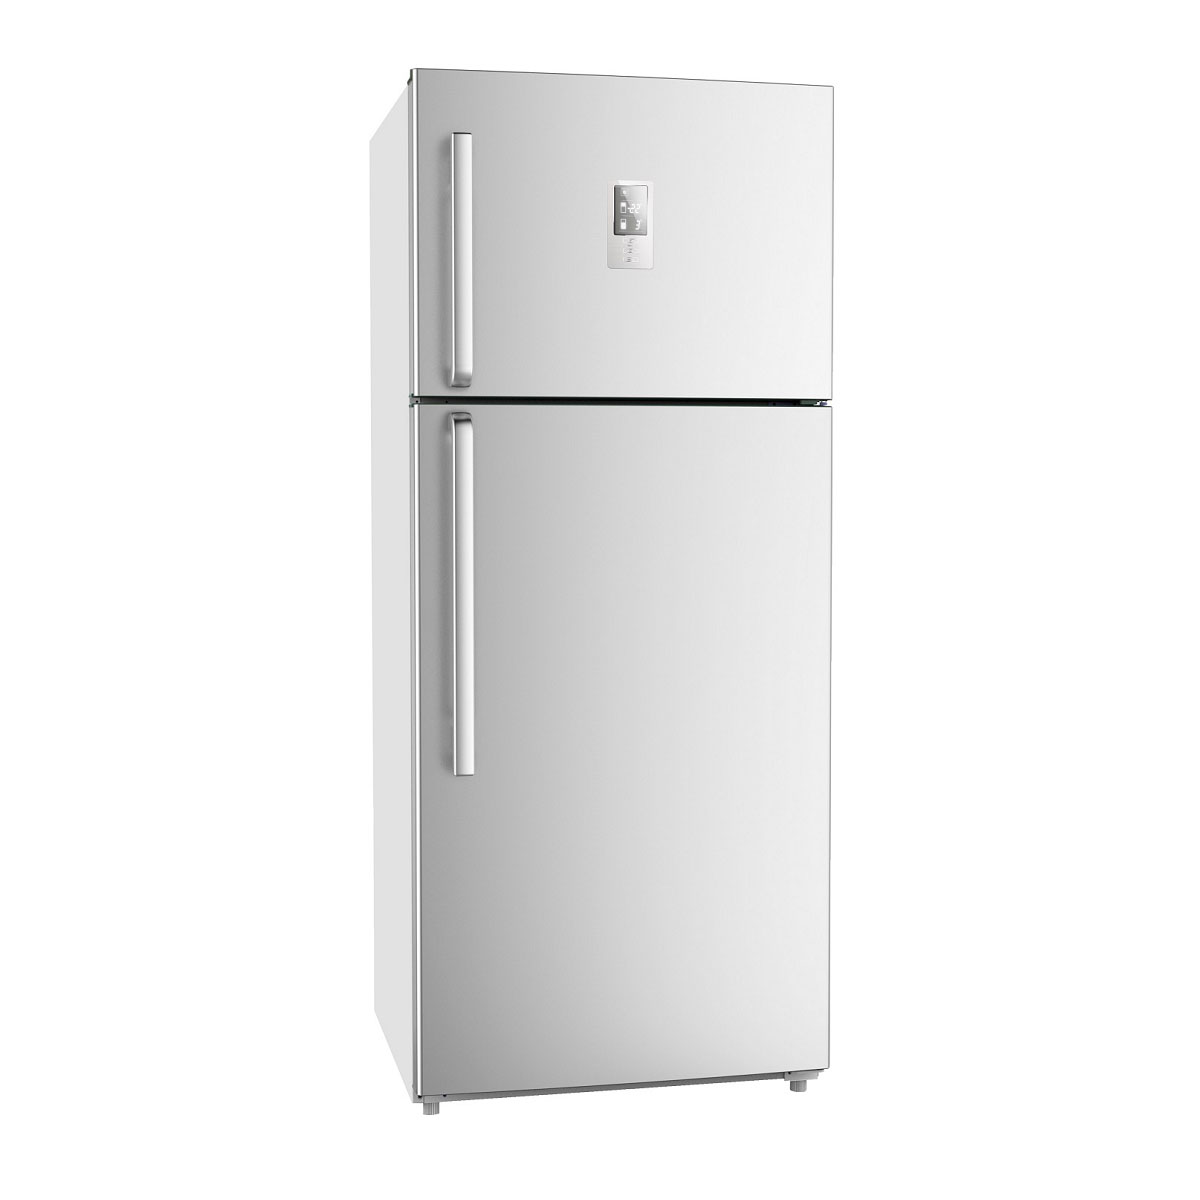 Midea MTM470W 470L Top Mount Fridge